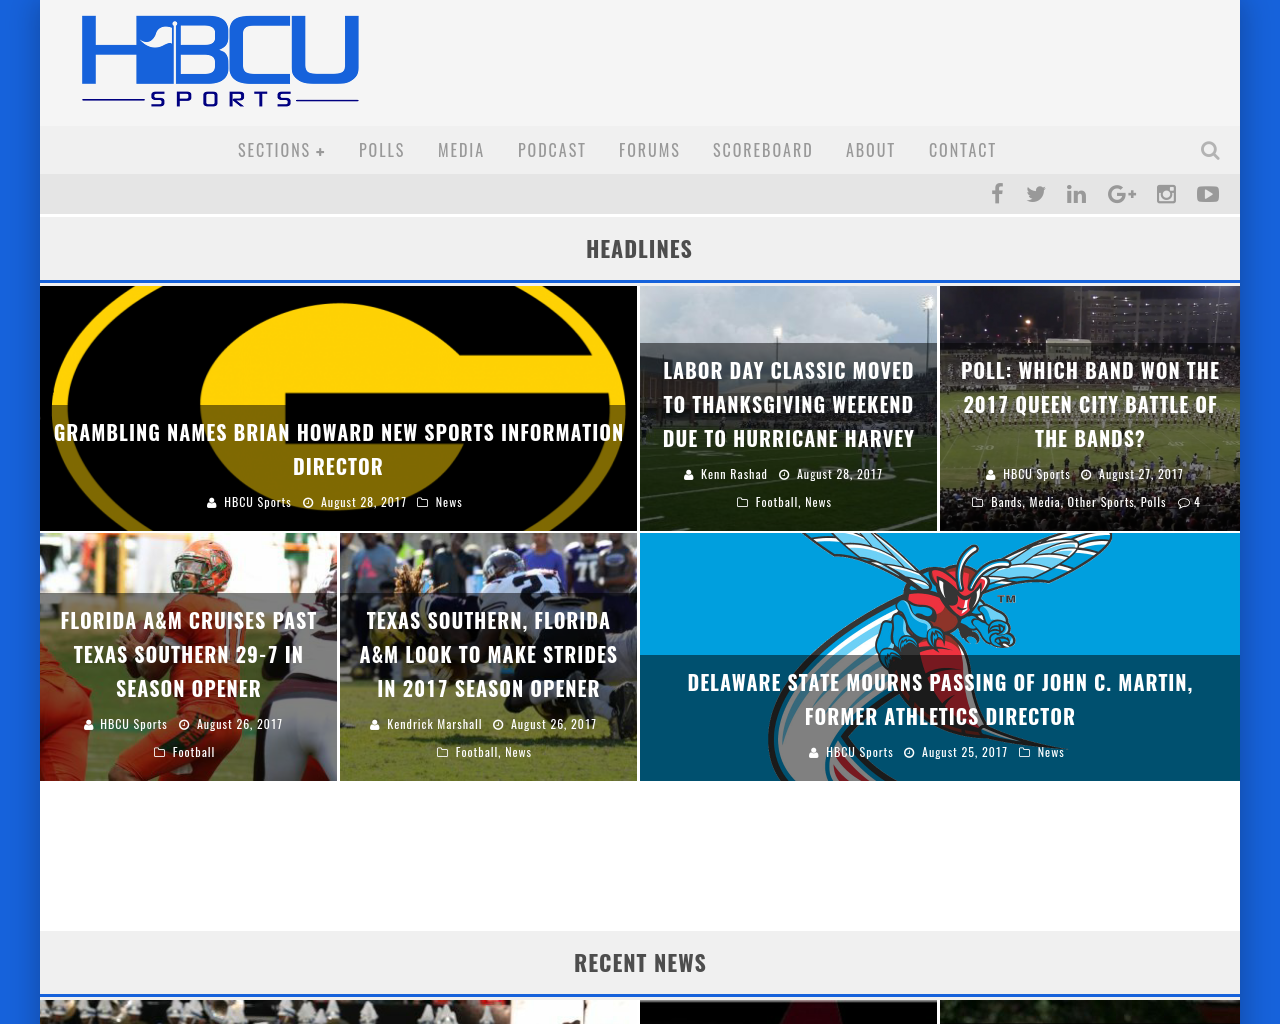 HBCU-SPORTS-Advertising-Reviews-Pricing